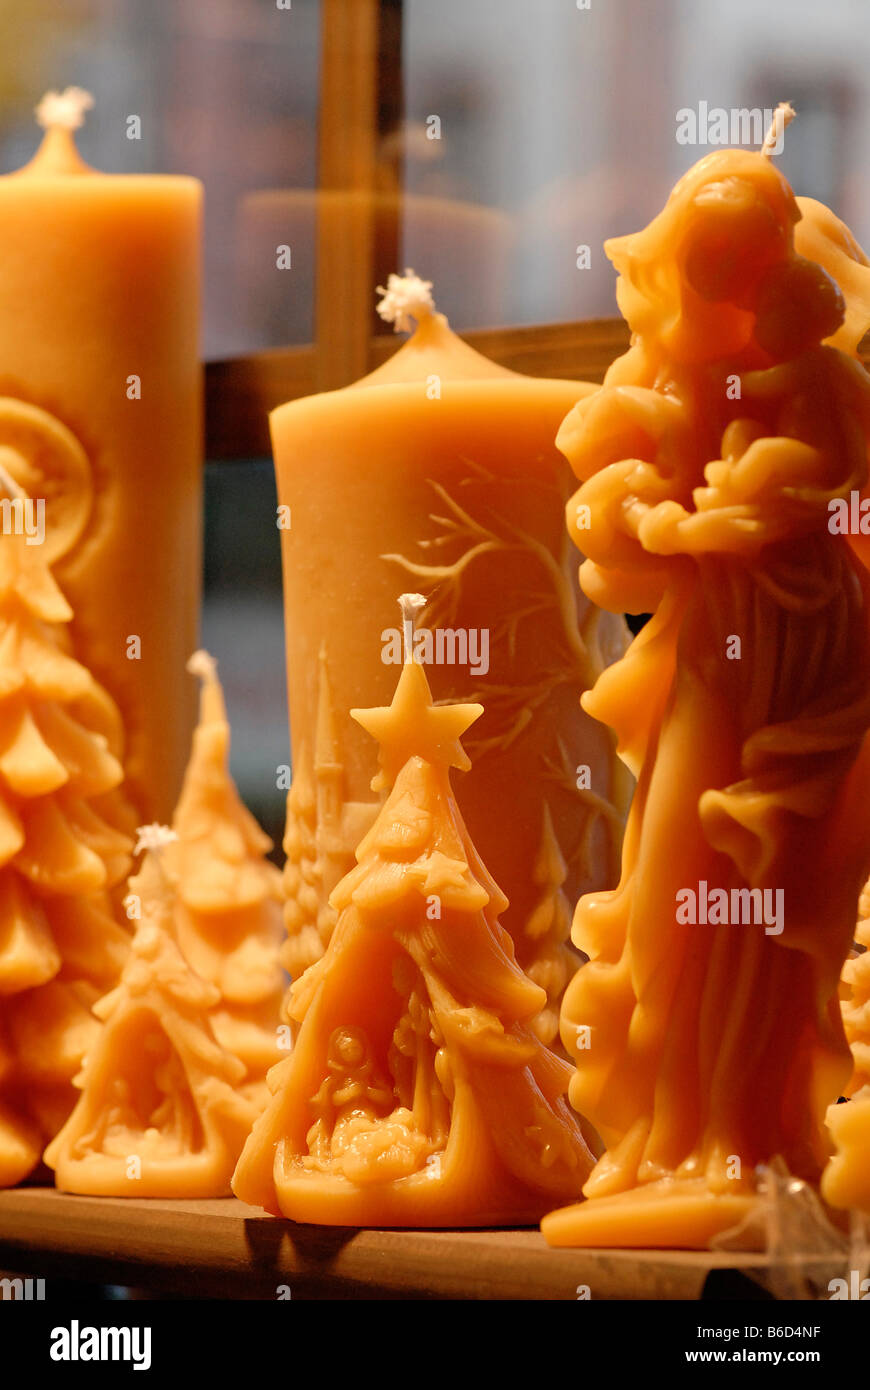 motives from a christmas market in a german city beeswax candles